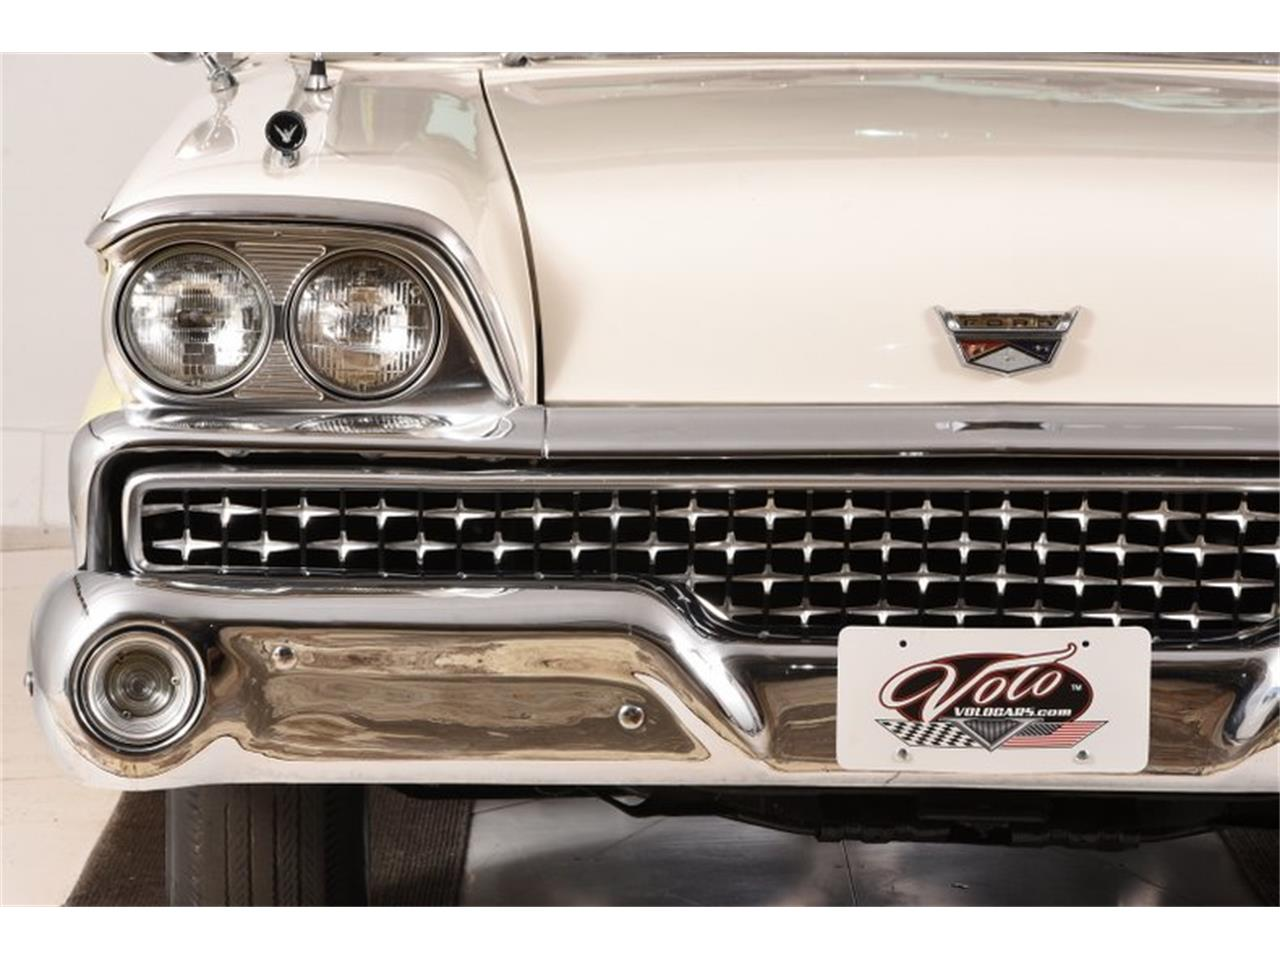 Large Picture of Classic 1959 Ford Fairlane located in Volo Illinois - $42,998.00 - OTK2